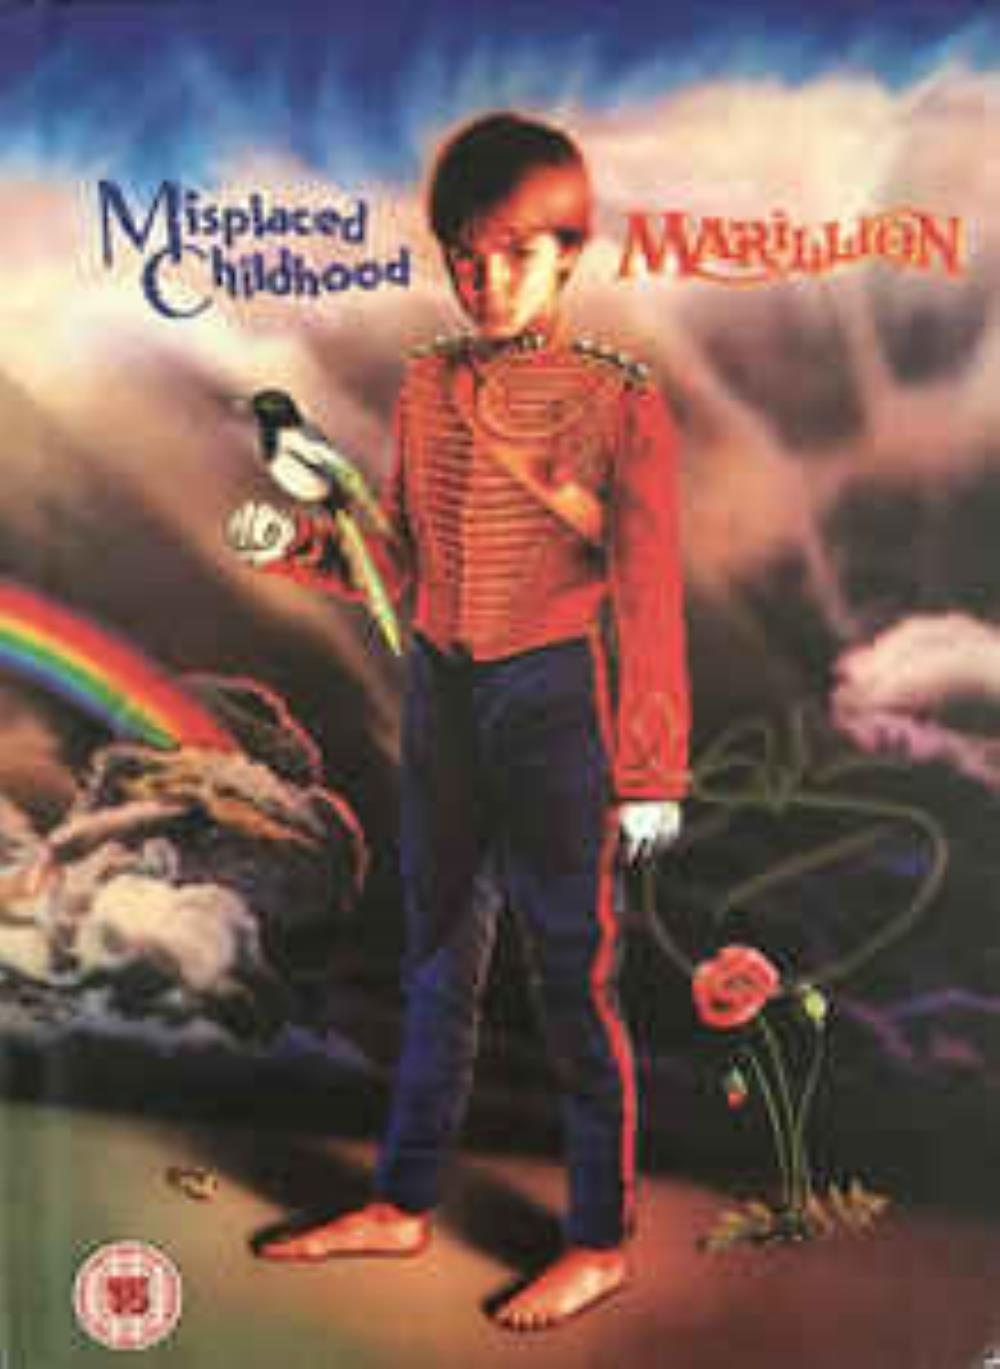 MARILLION - Misplaced Childhood CD album cover